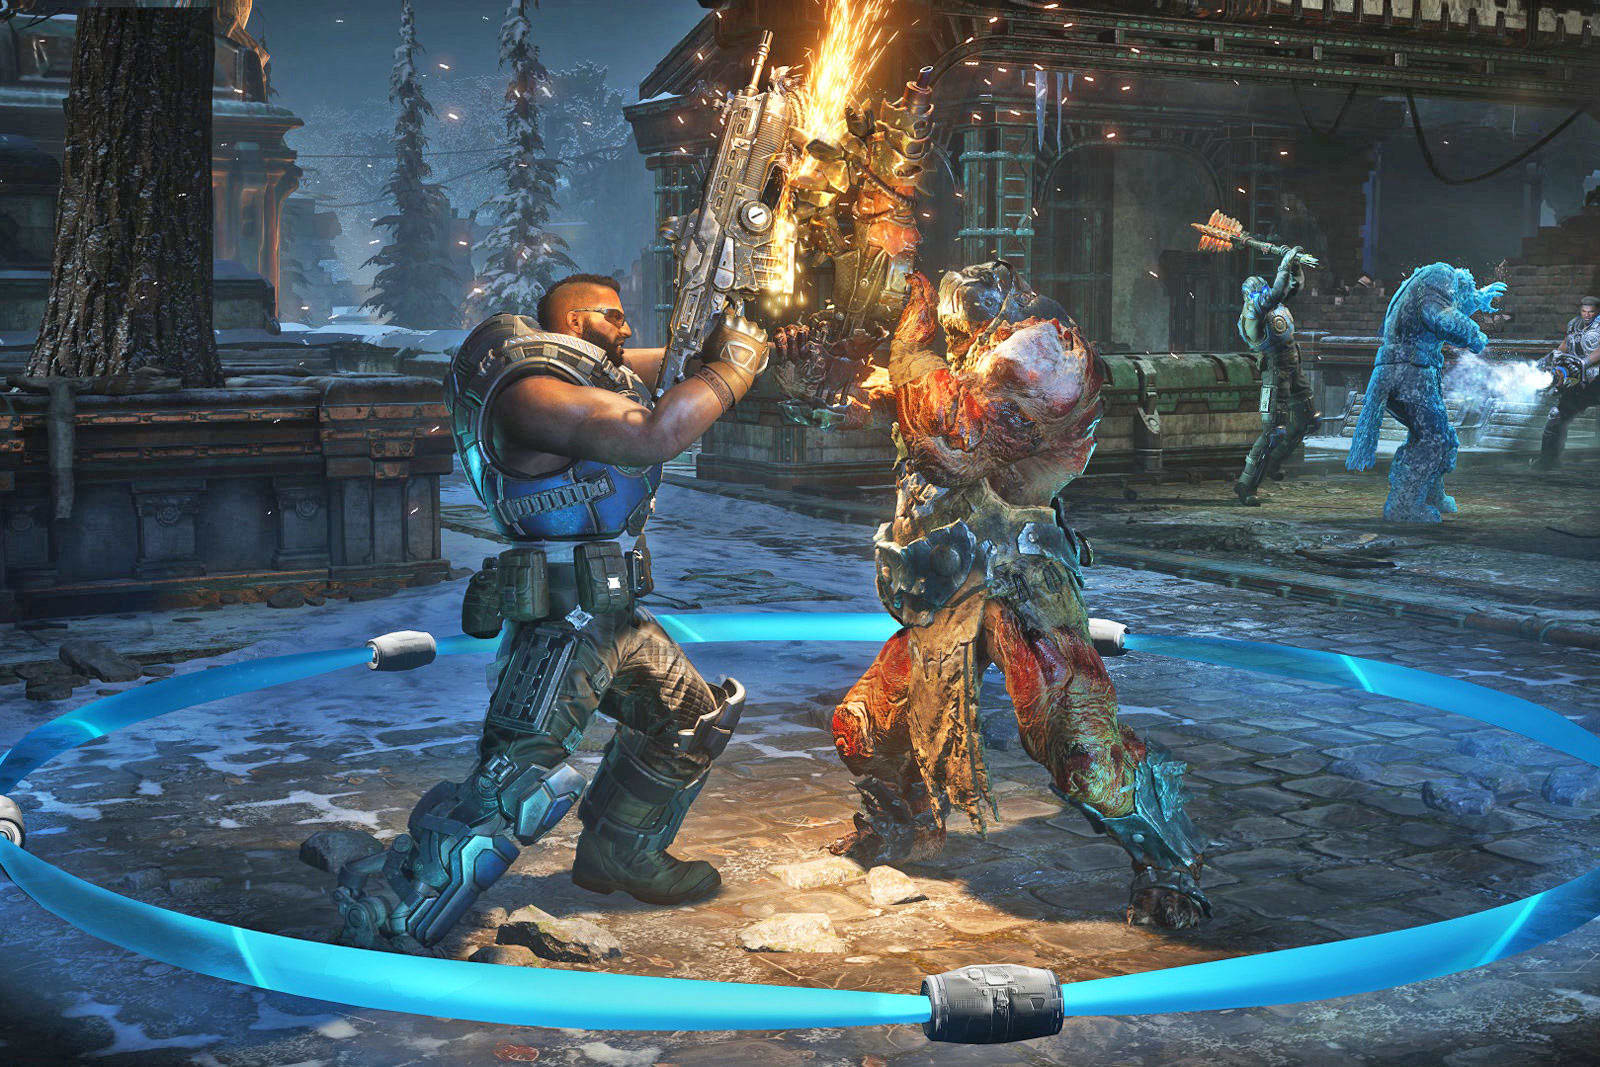 Gears 5' multiplayer test starts July 19th